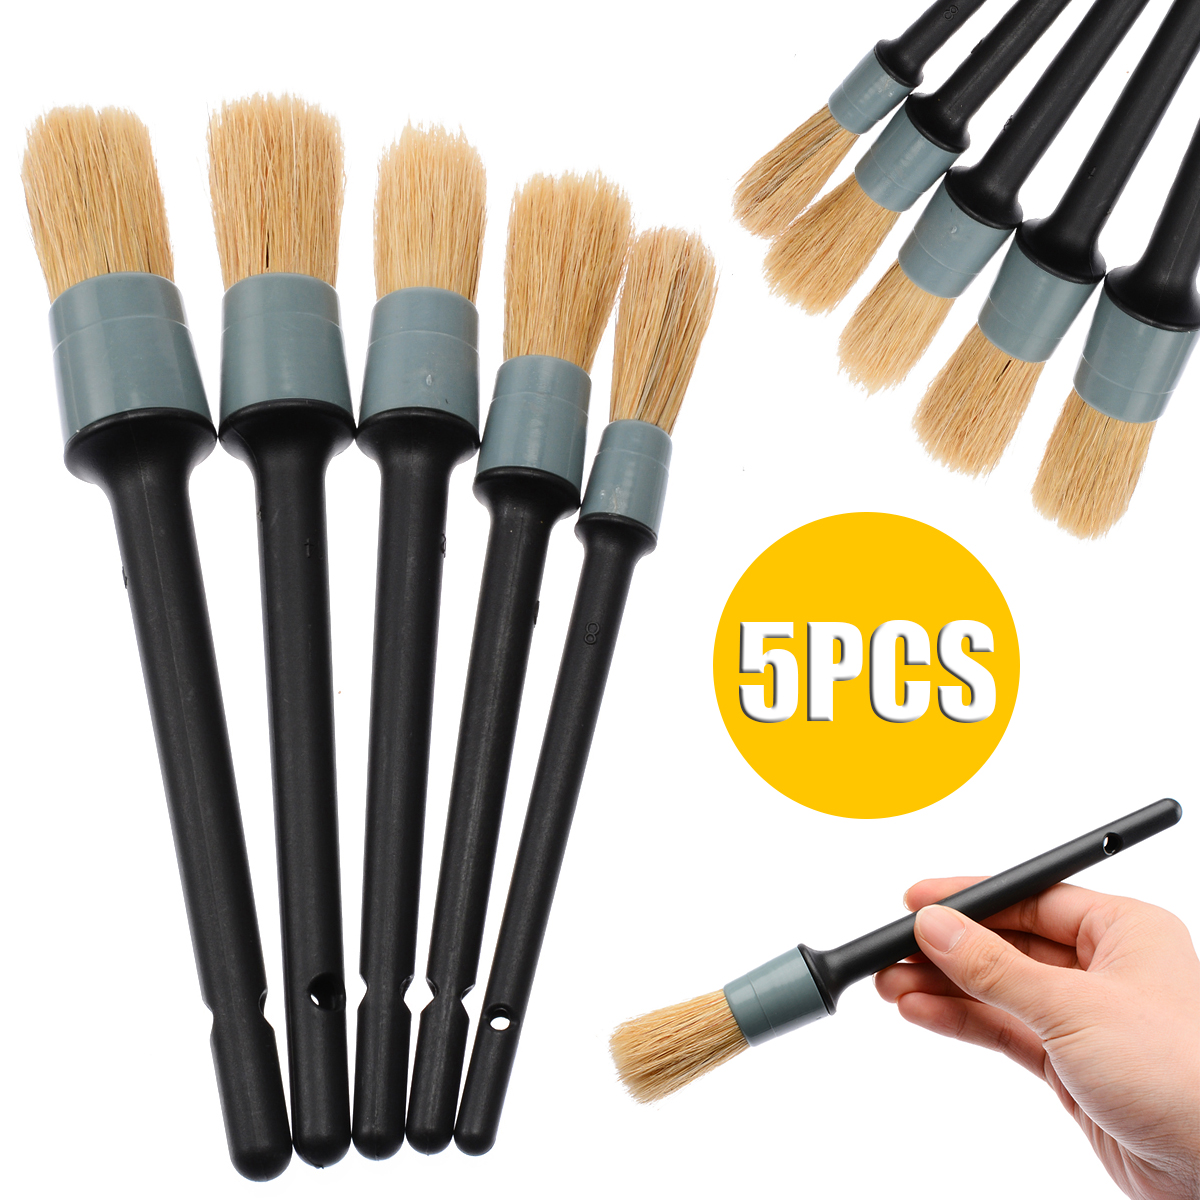 Practical 5pcs/set Car Detailing Brushes Natural Boar Hair Brushes Auto Detail Tools Universal For Car Wash Home Kitchen